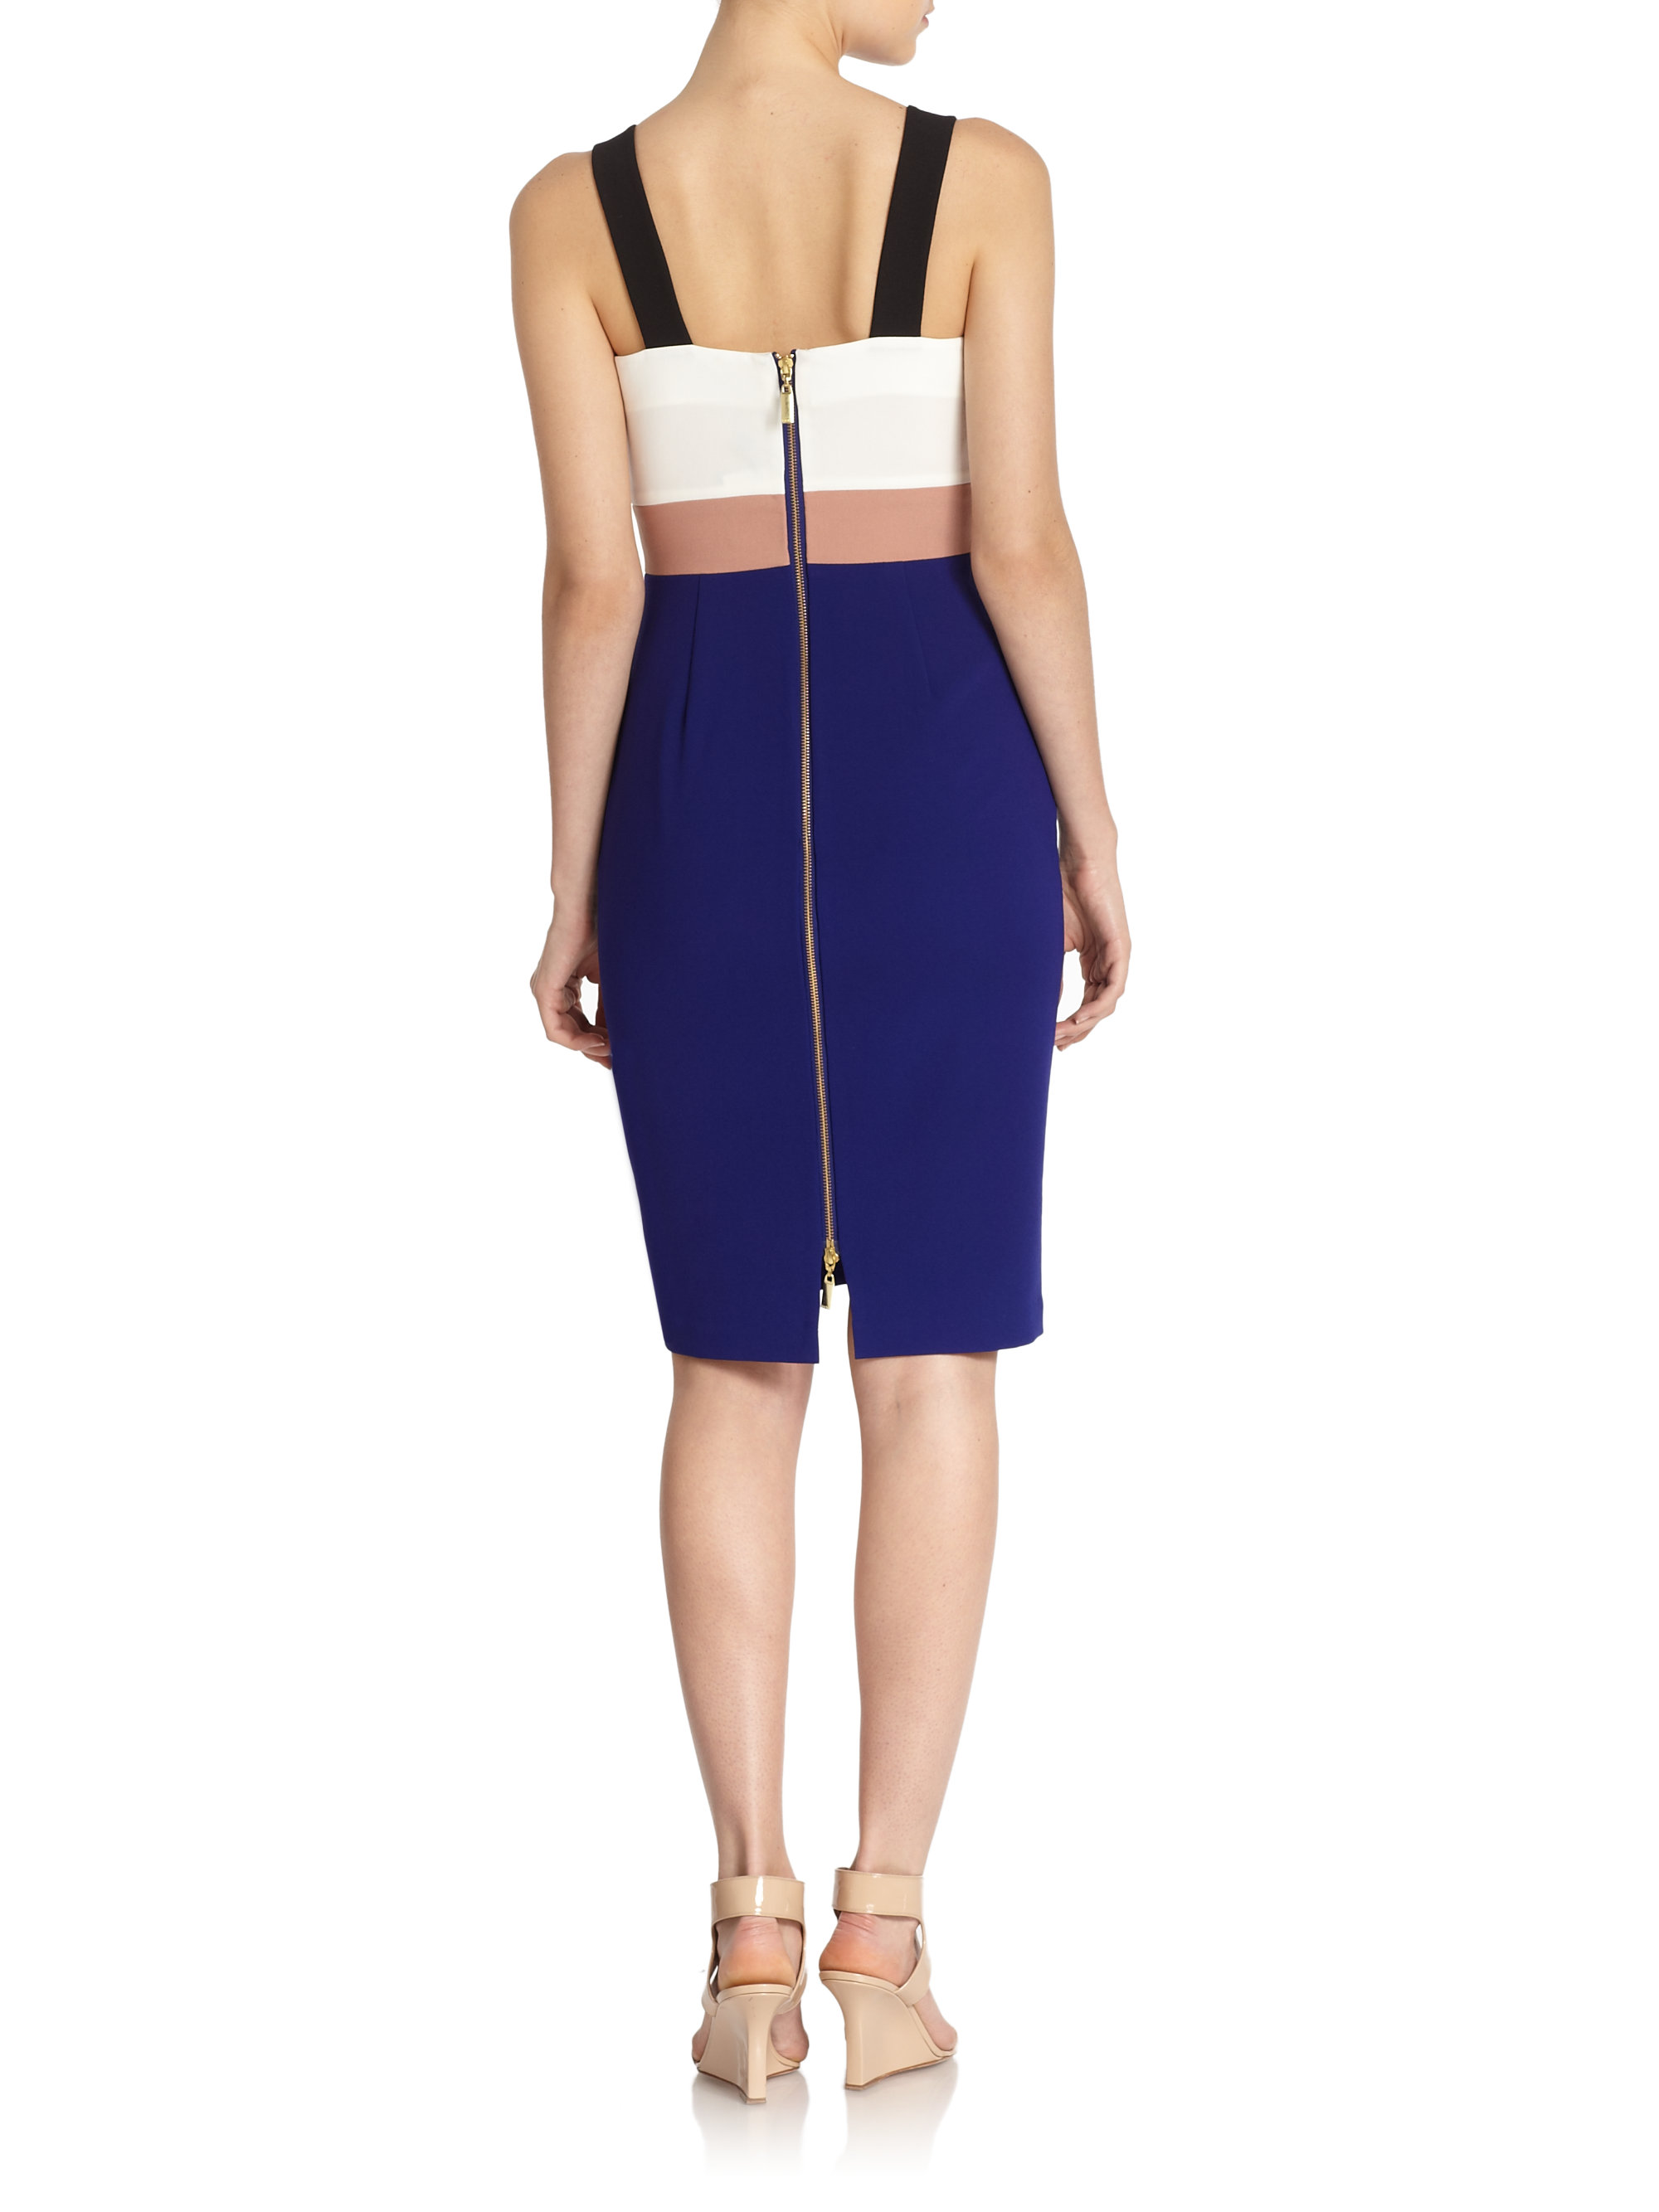 Raoul Genevieve Color Block Eyelet Dress in Blue | Lyst